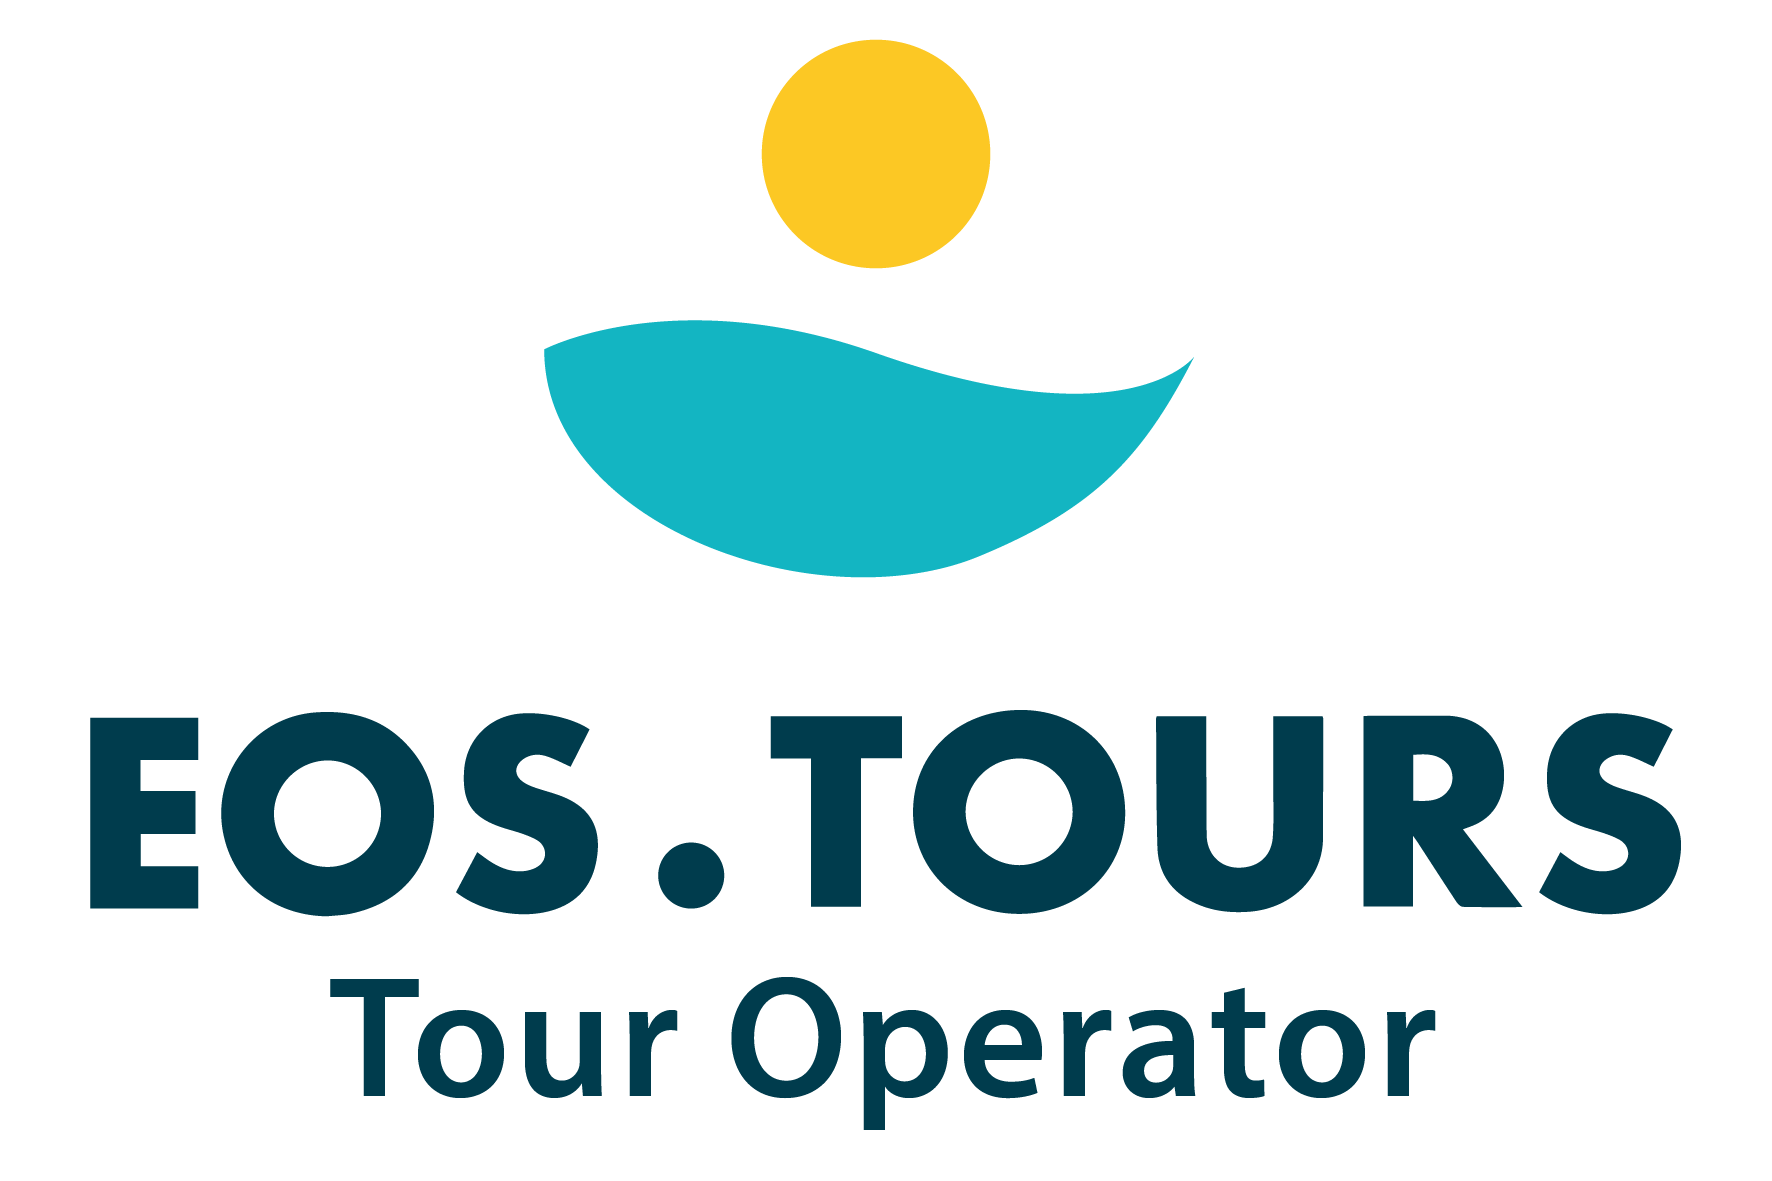 EOS TOURS Ltd